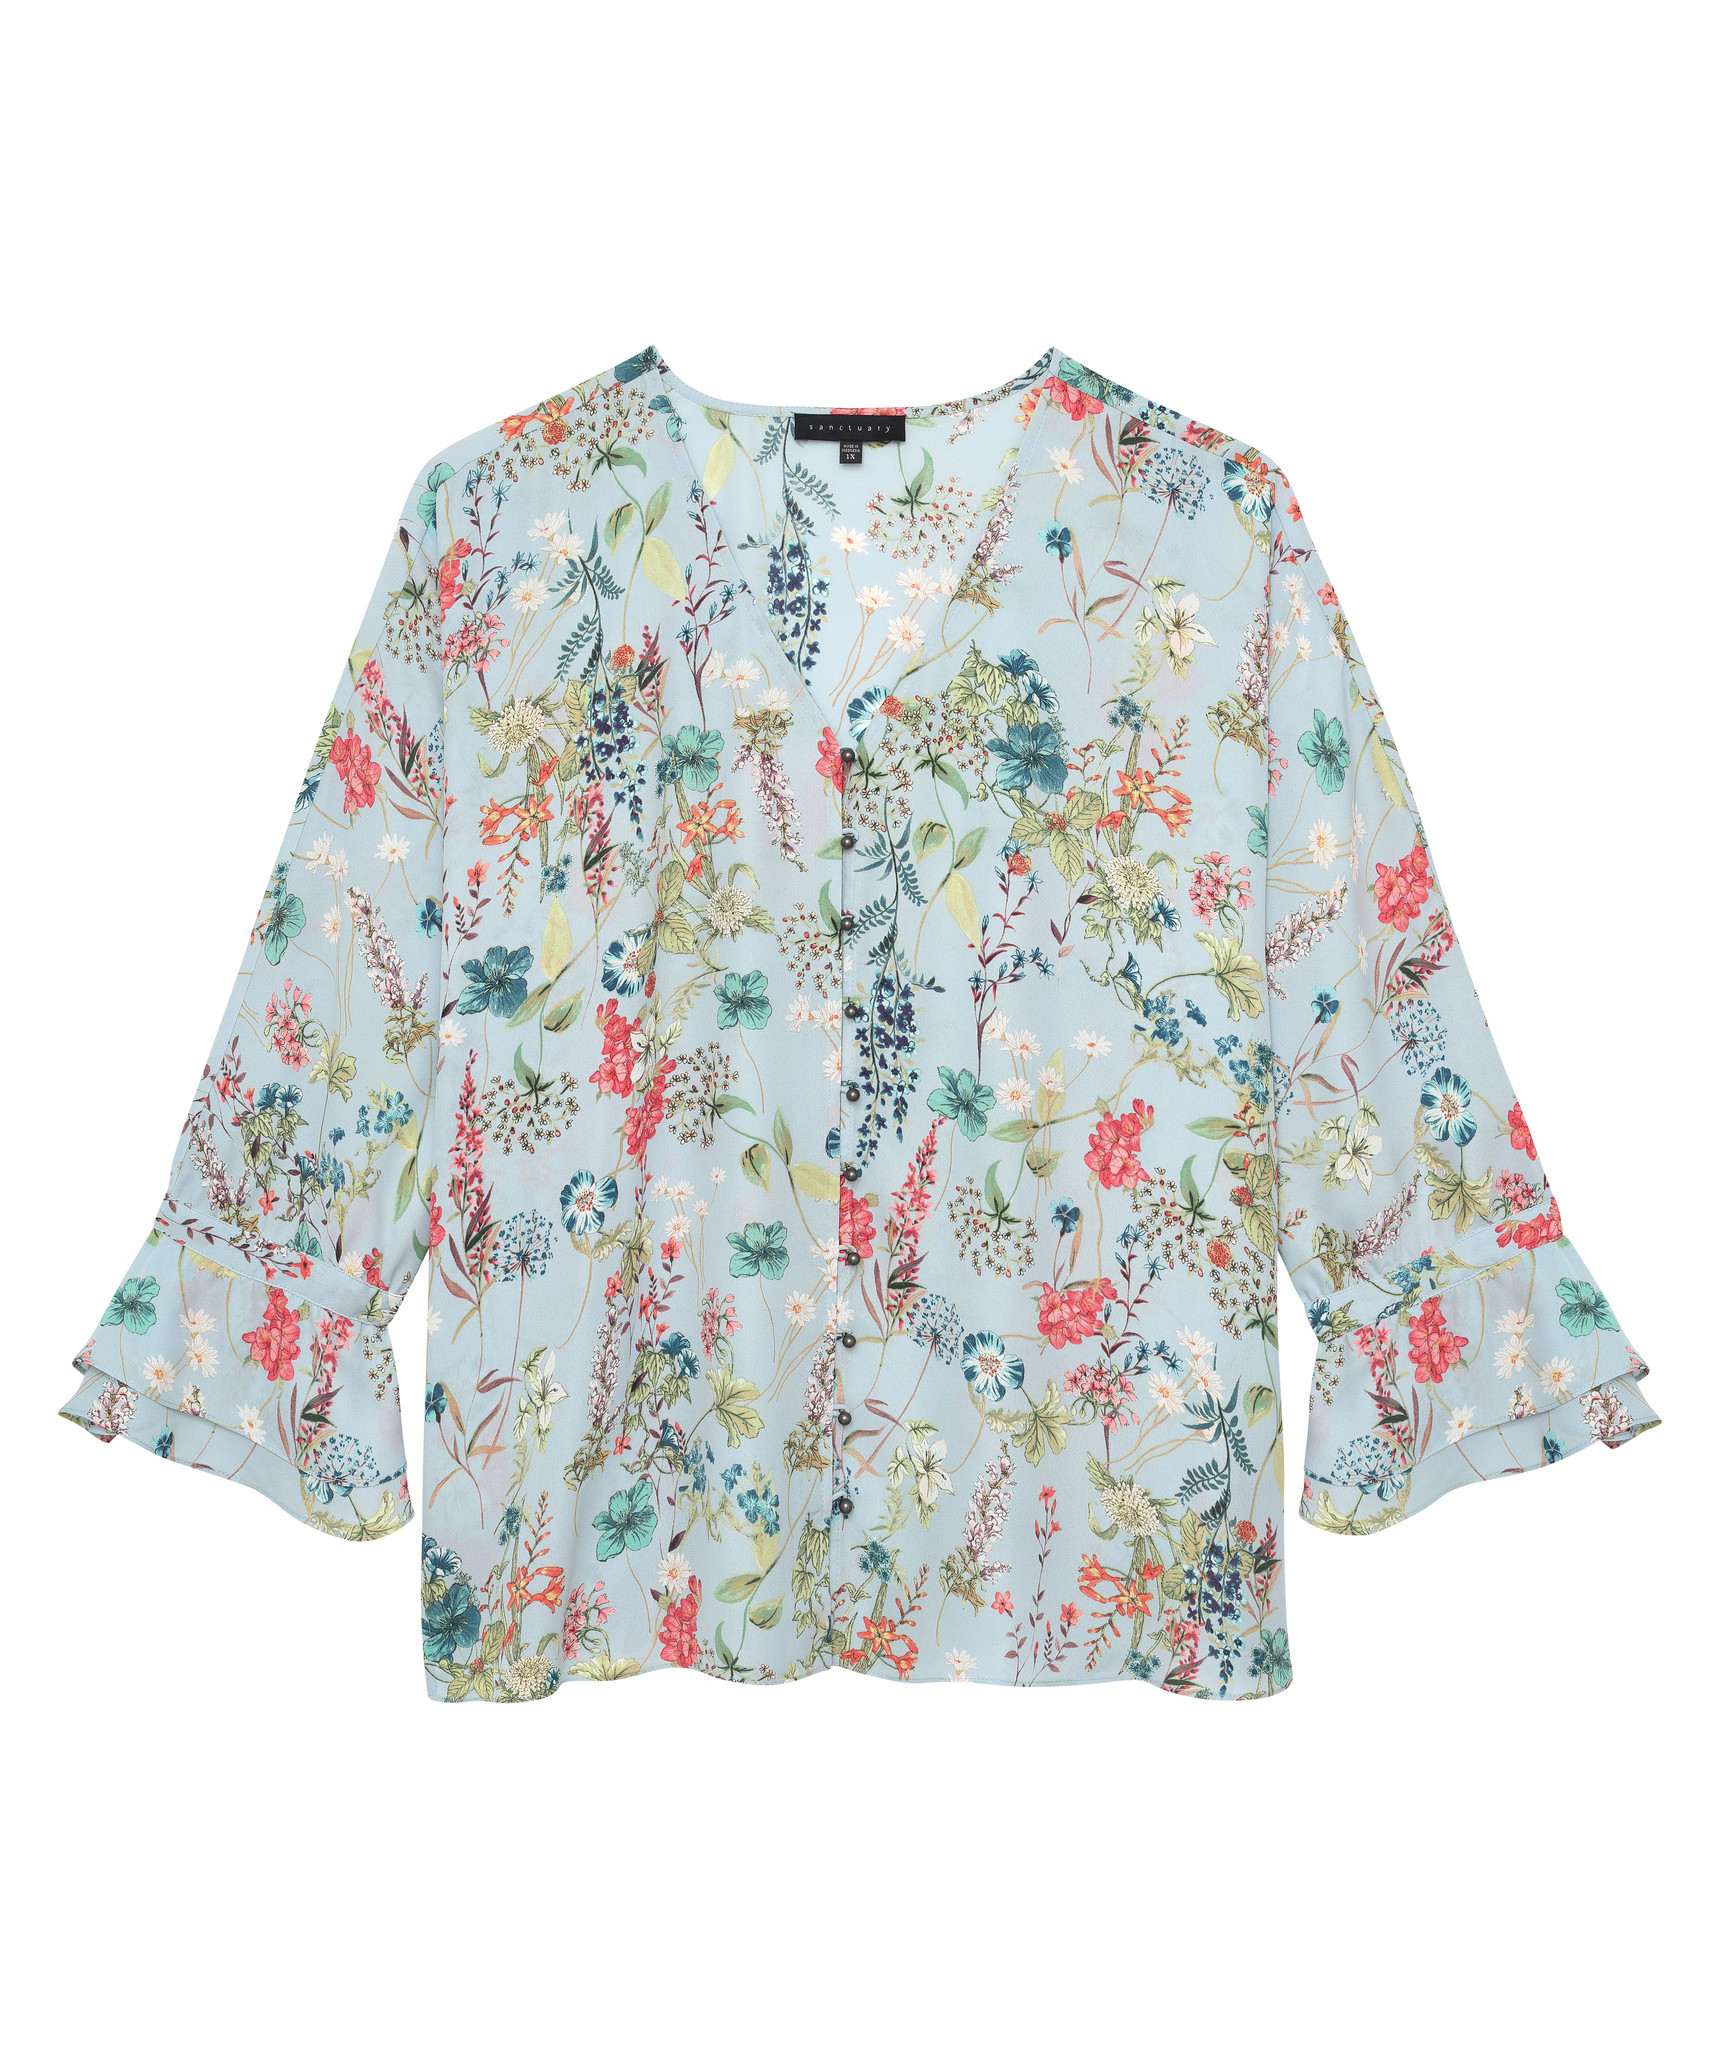 A summery floral blouse from Sanctuary will come is part of the brand's 'inclusive' program that runs across multiple size groups.